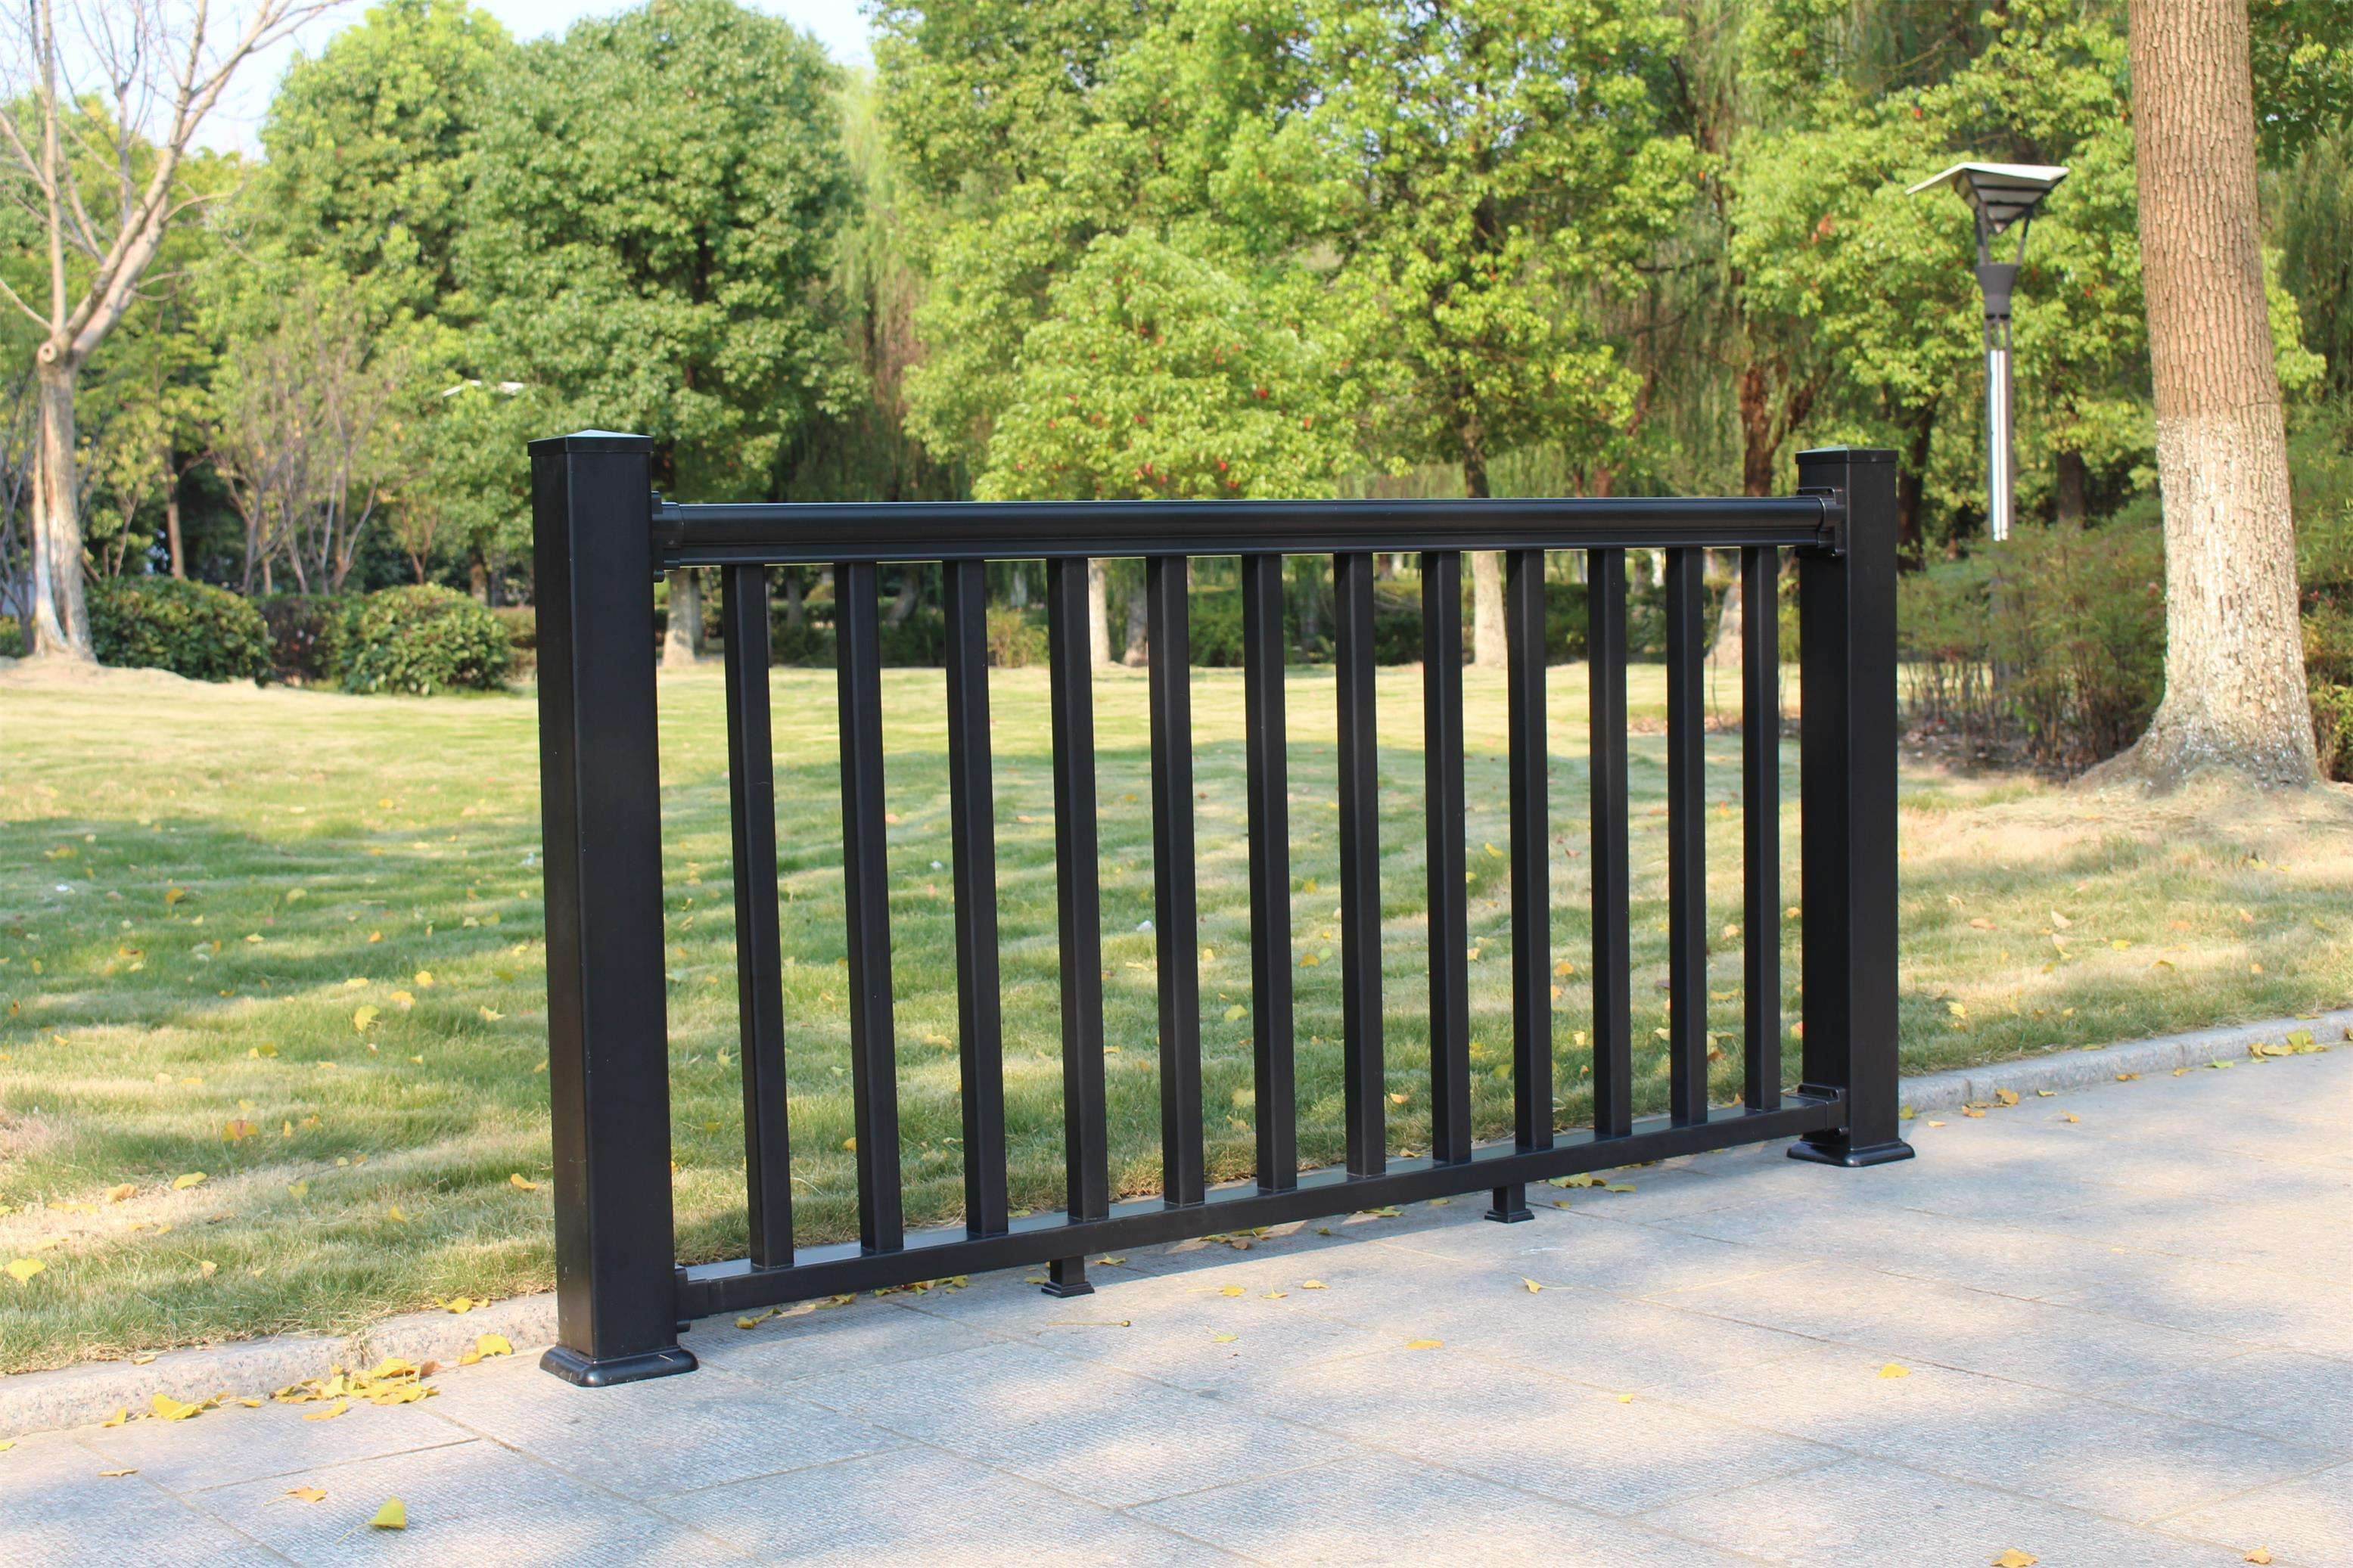 Railing 0.96 * 1.8 M Wholesale Factory Directly Price PVC Railing And Fence For House